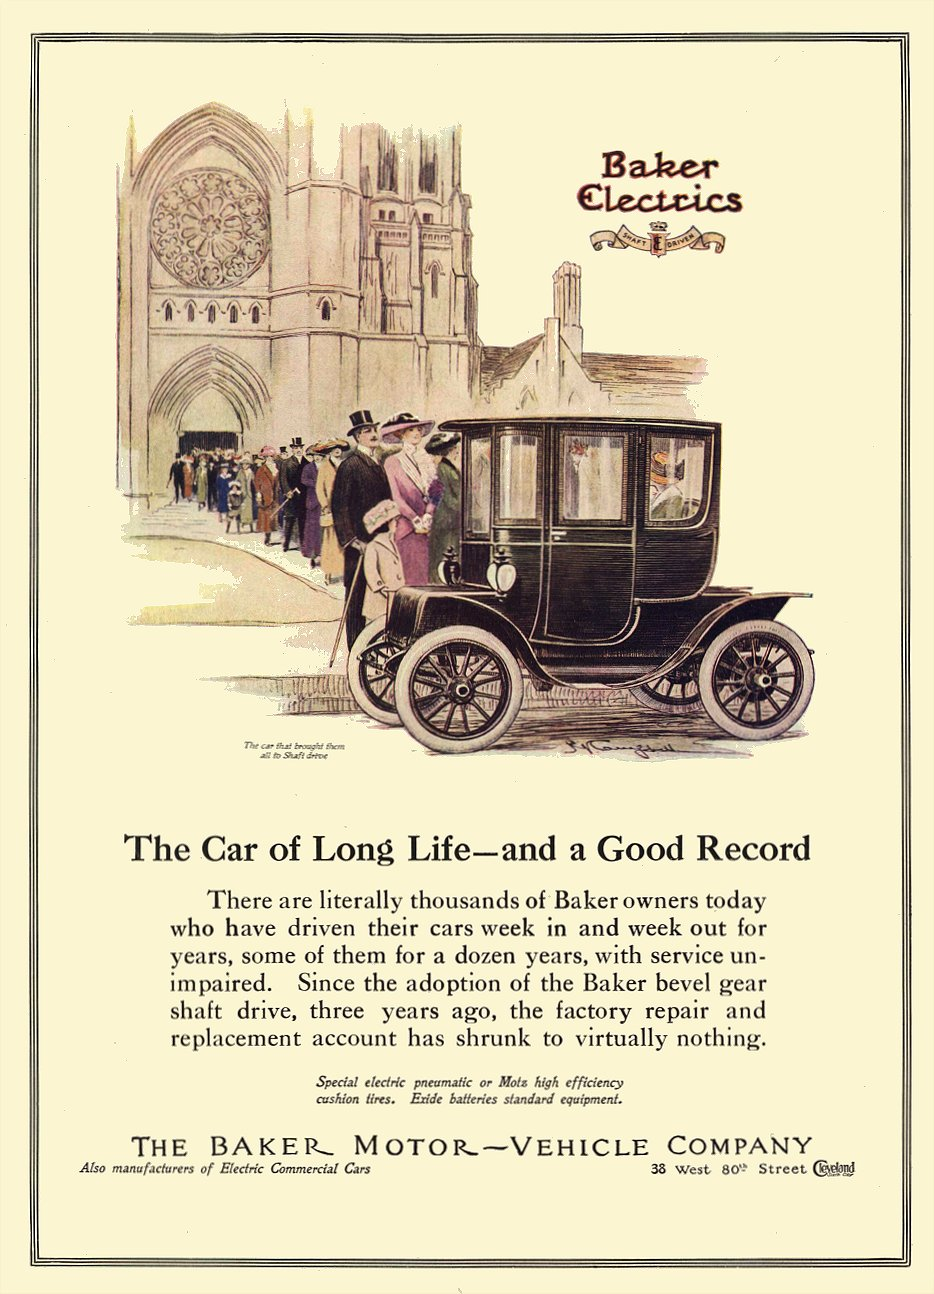 1912 3 BAKER Electric The Car of Long Life – And a Good Record THE BAKER MOTOR-VEHICLE COMPANY Cleveland, OHIO COUNTRY LIFE IN AMERICA March 1912 9.5″x13.25″